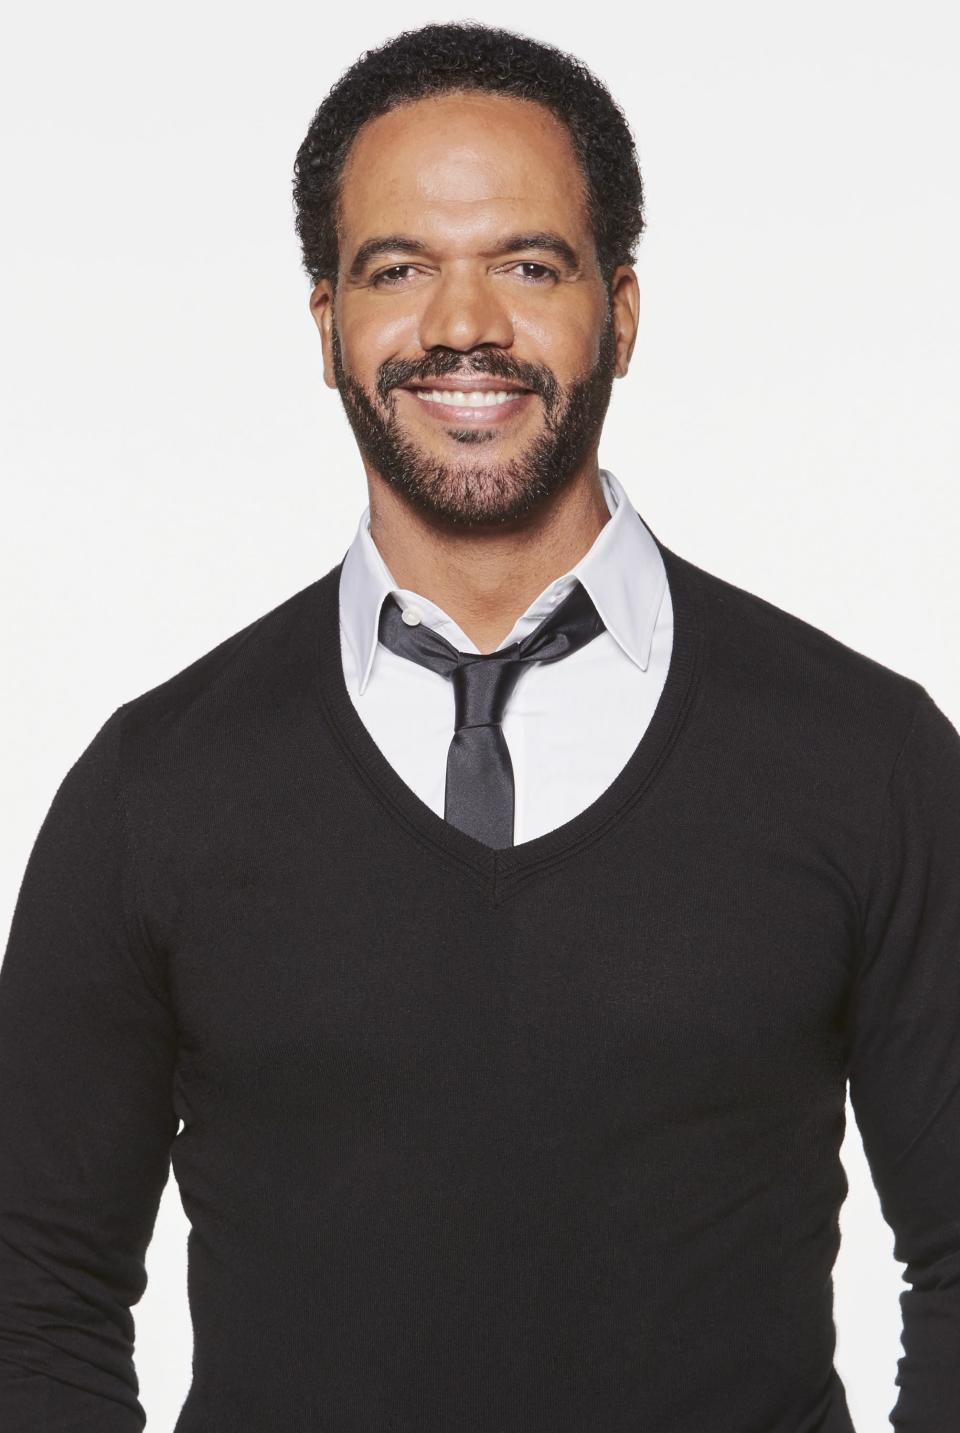 Kristoff St. John, who played Neil Winters on CBS's <i>The Young and the Restless, </i>died Sunday at the age of 52. (Photo: Monty Brinton/CBS via Getty Images)